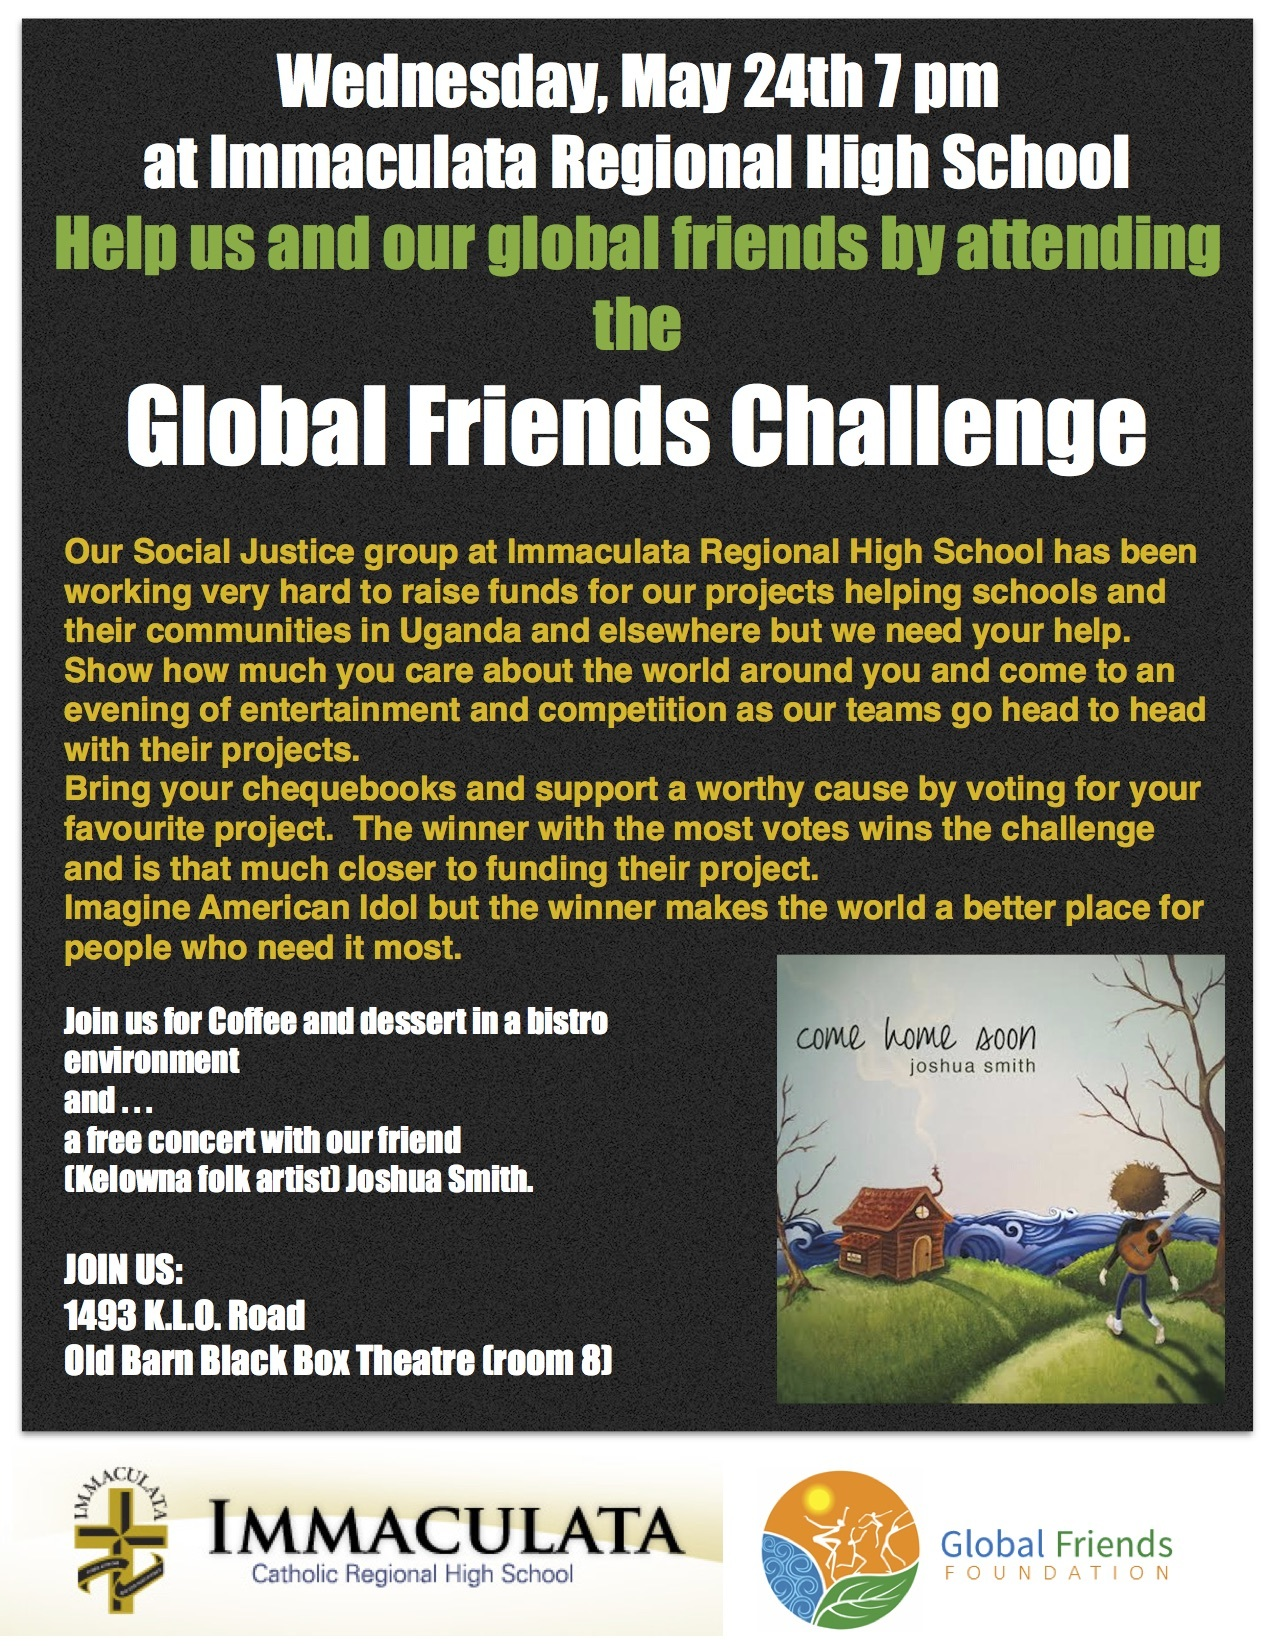 GLOBAL FRIENDS CHALLENGE